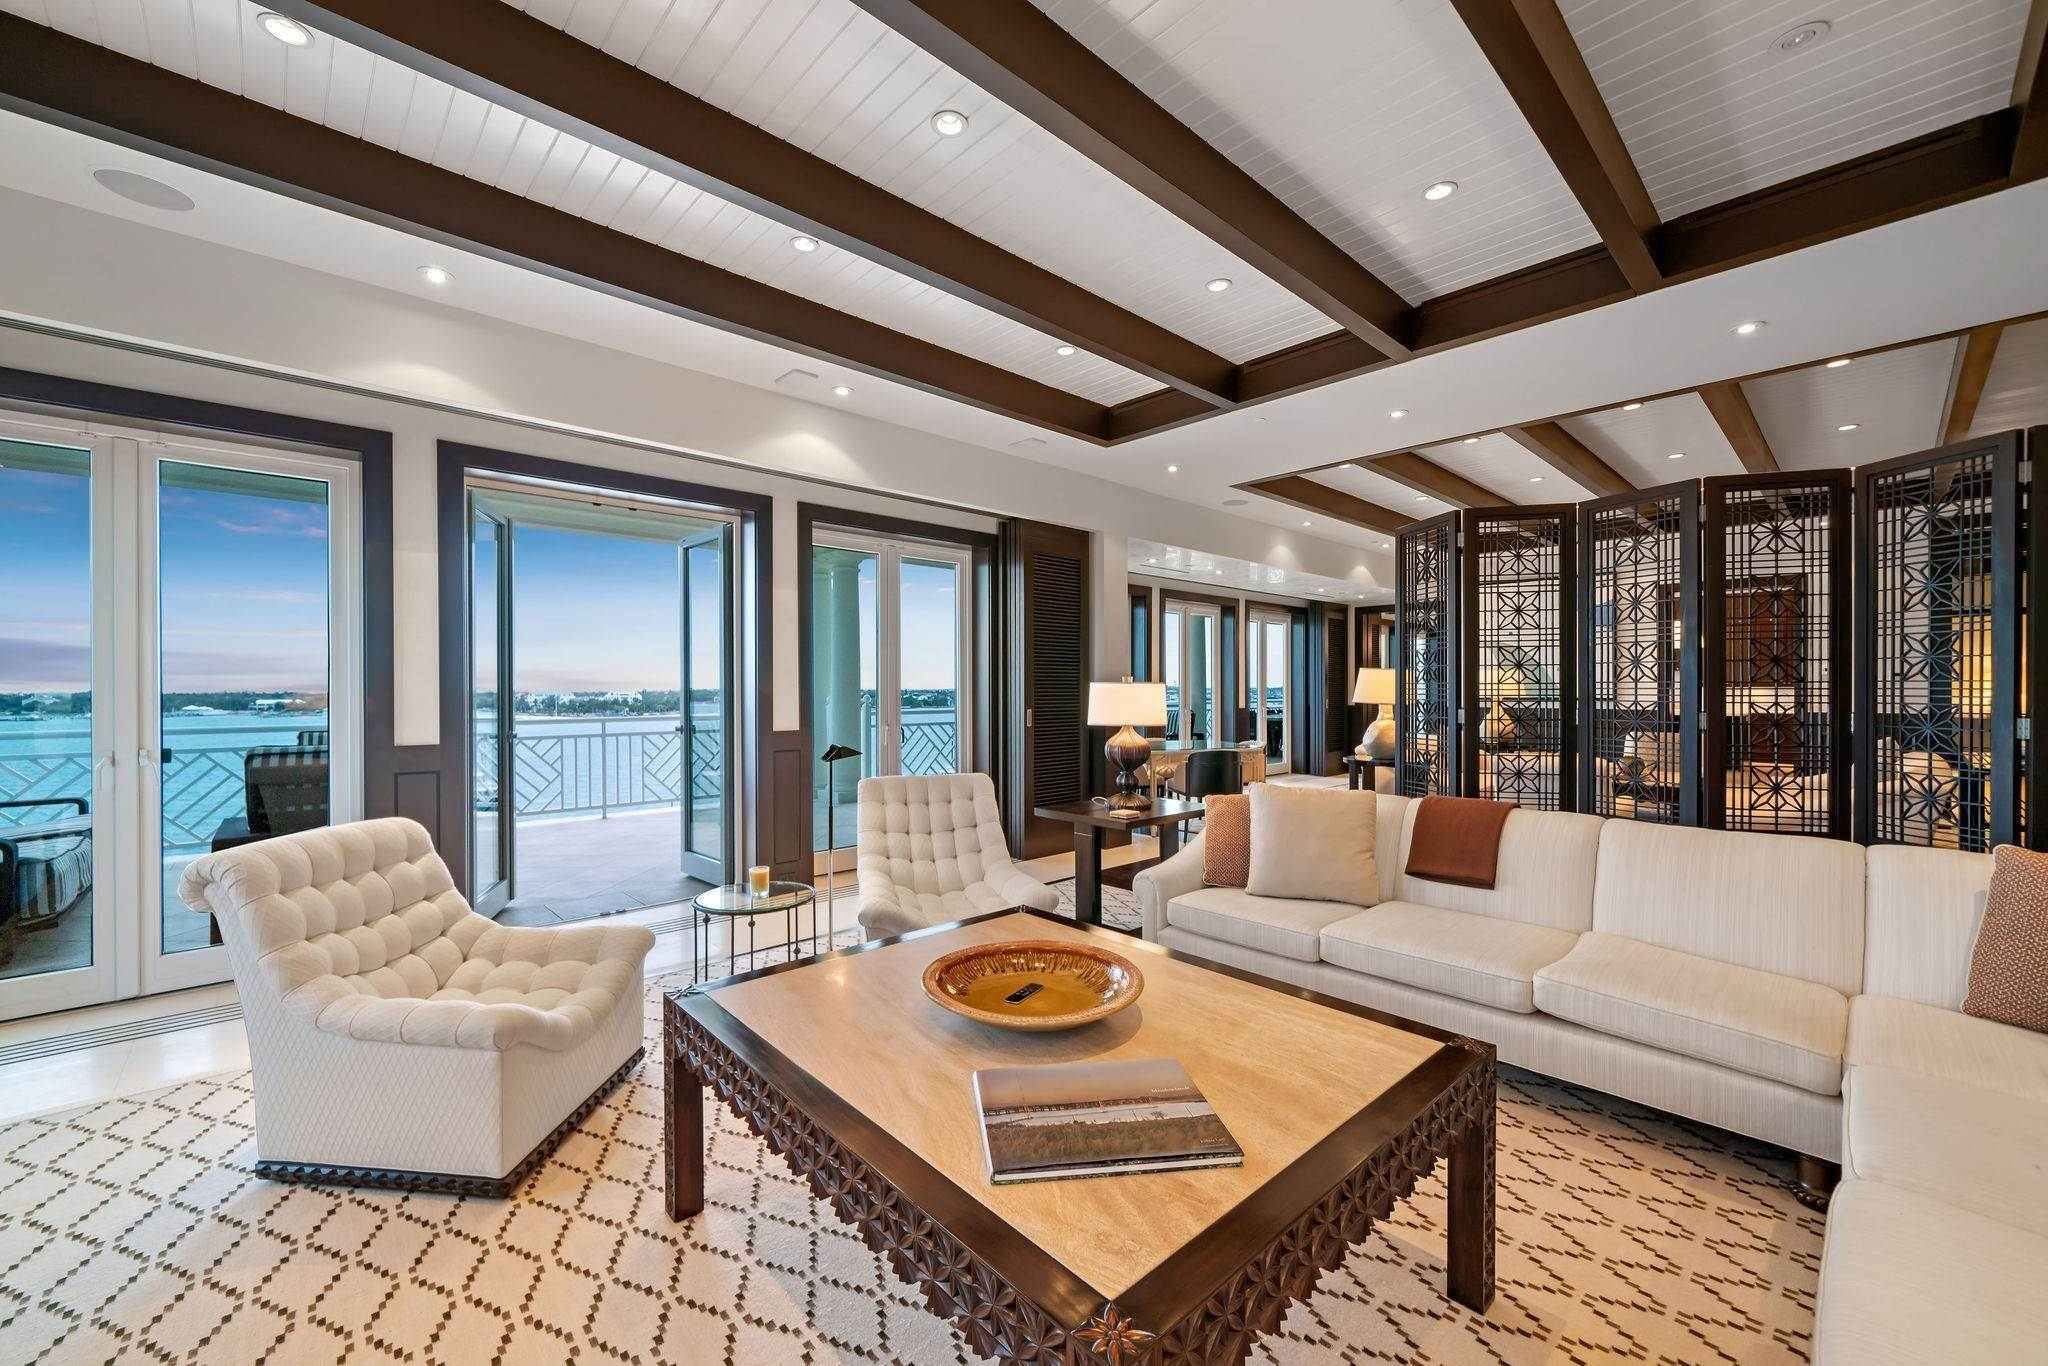 Co-op / Condo for Sale at Sophisticated Penthouse at The Ocean Club Residences and Marina - MLS 44064 Ocean Club Residences and Marina, Paradise Island, Nassau And Paradise Island Bahamas